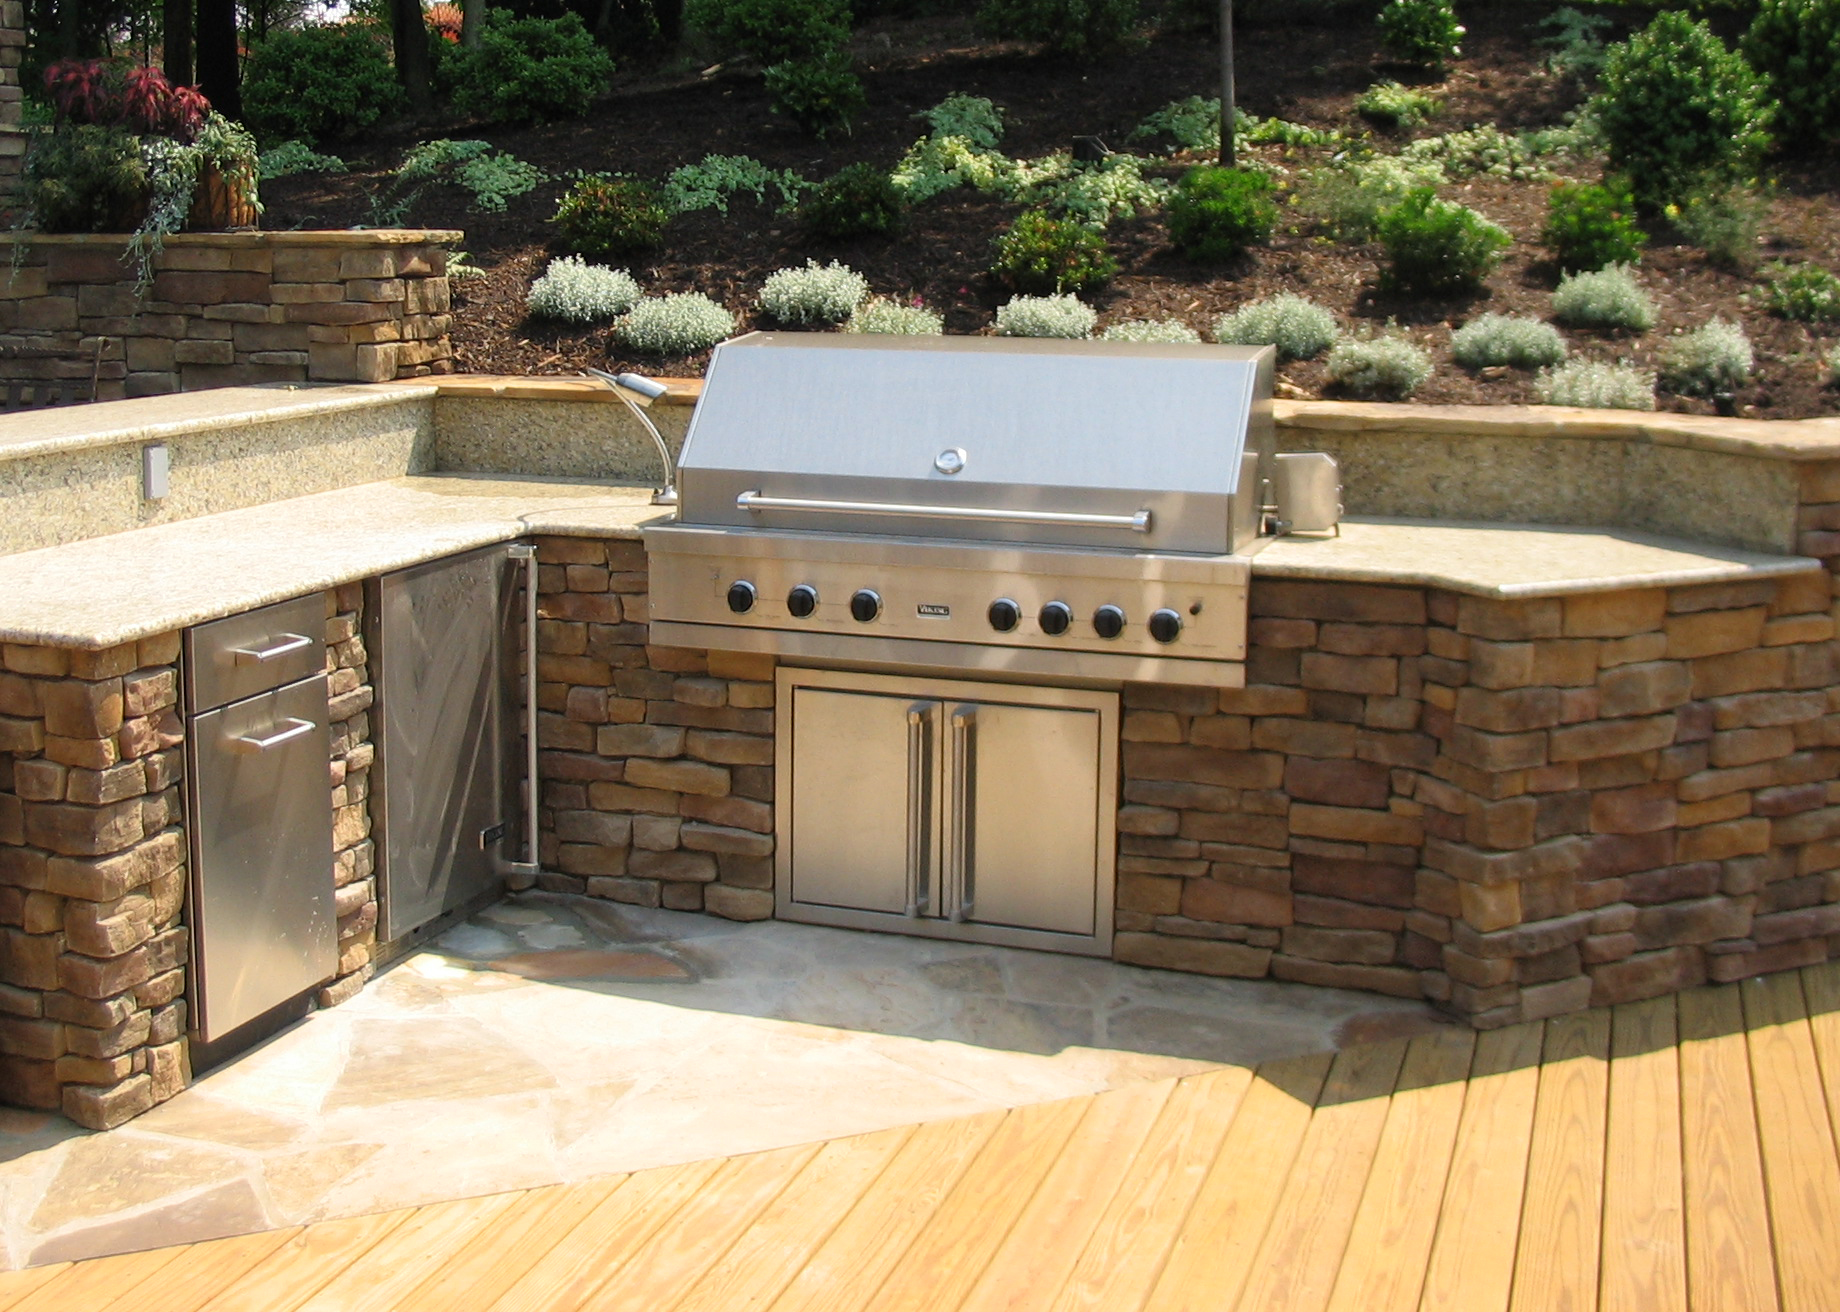 Outdoor Kitchen BBQ Grills | 1840 x 1312 · 1350 kB · jpeg | 1840 x 1312 · 1350 kB · jpeg